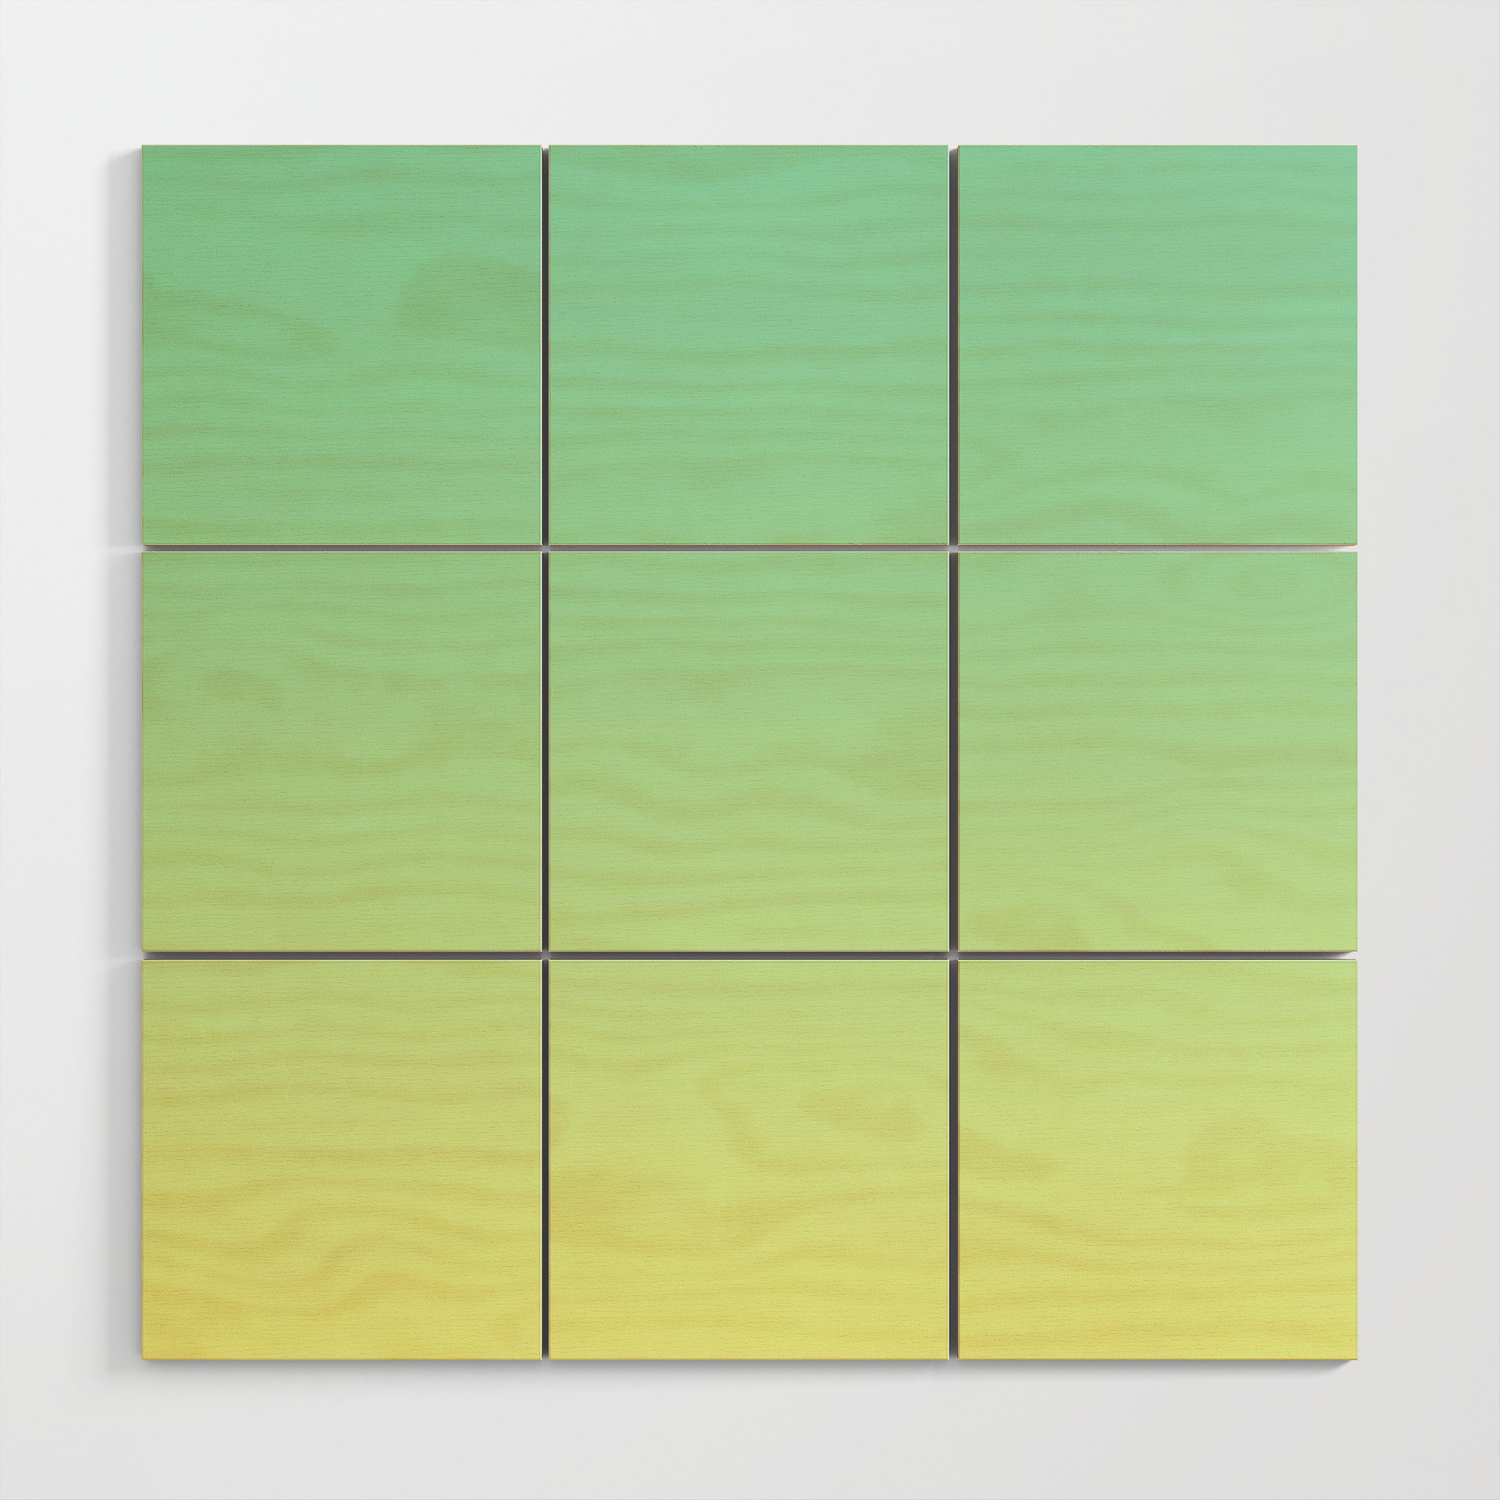 Lakethe Sea – Minimal Plain Soft Mood Color Blend Prints Wood Wall Art Burning With Latest Blended Fabric Lago Di Como Ii Wall Hangings (View 9 of 20)